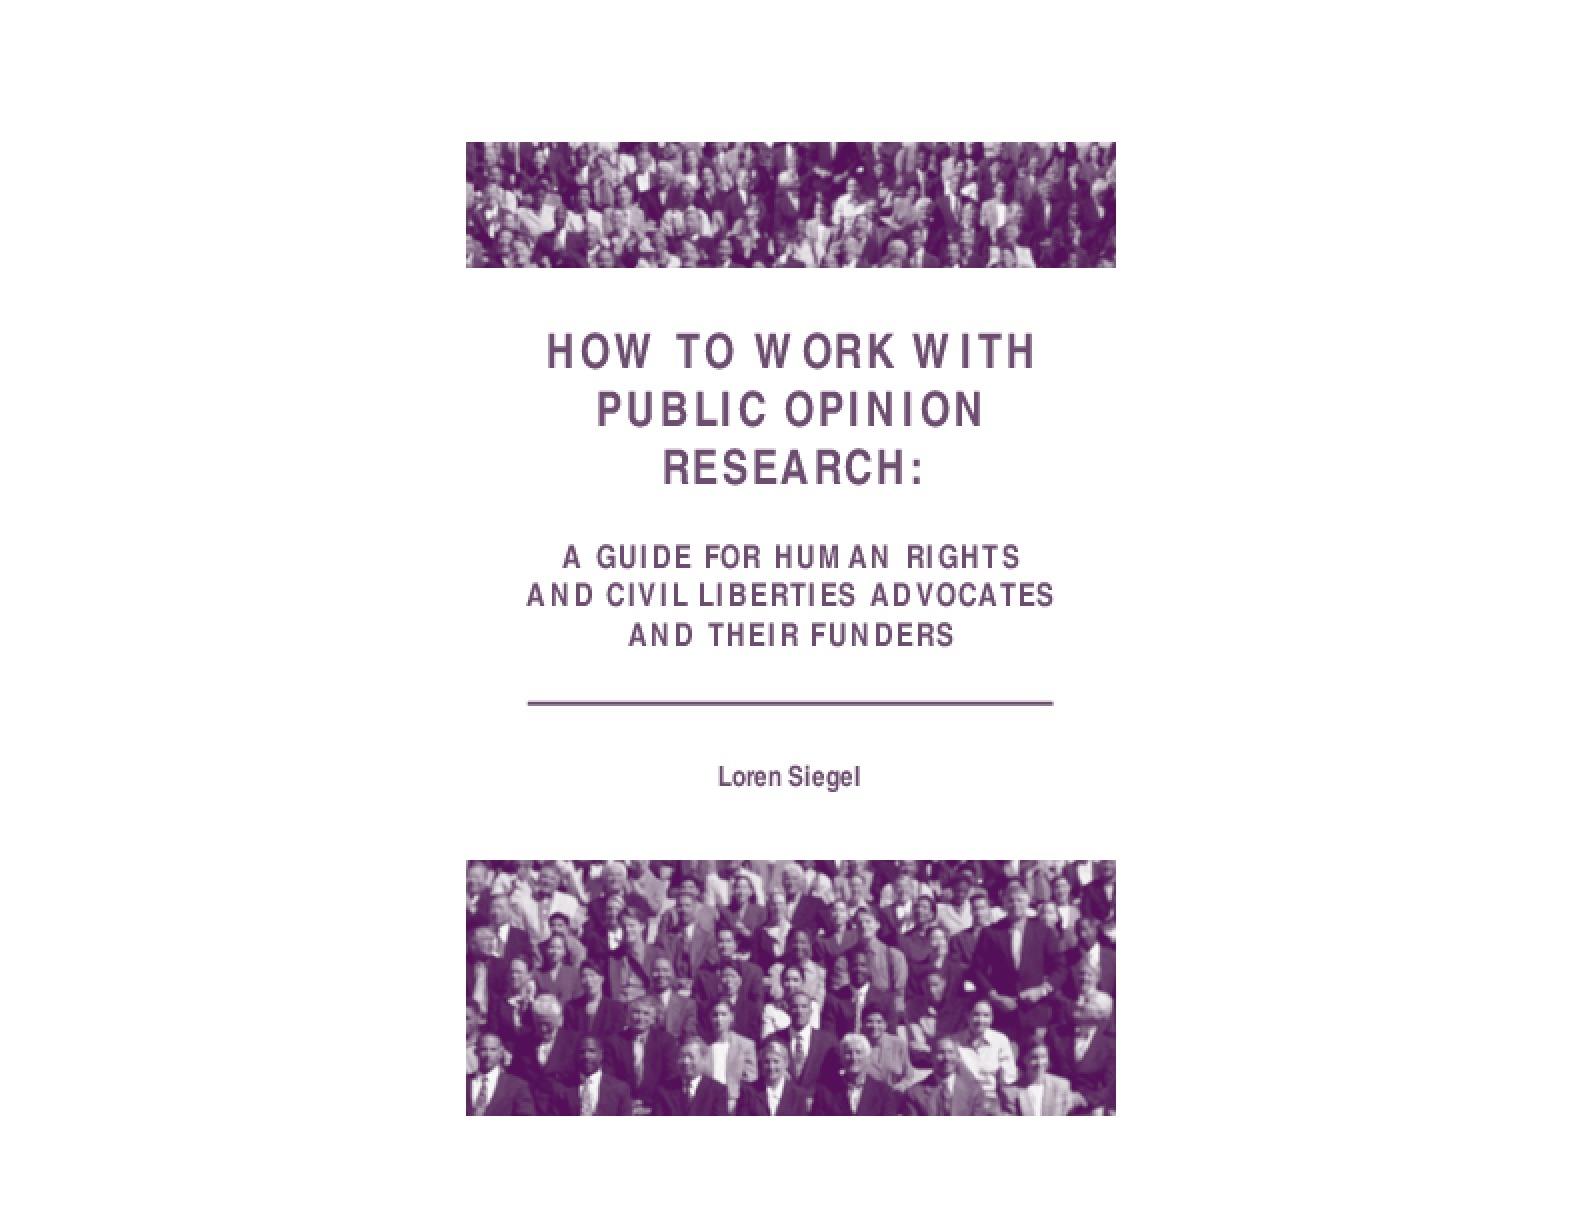 How to Work With Public Opinion Research: A Guide for Human Rights and Civil Liberties Advocates and Their Funders